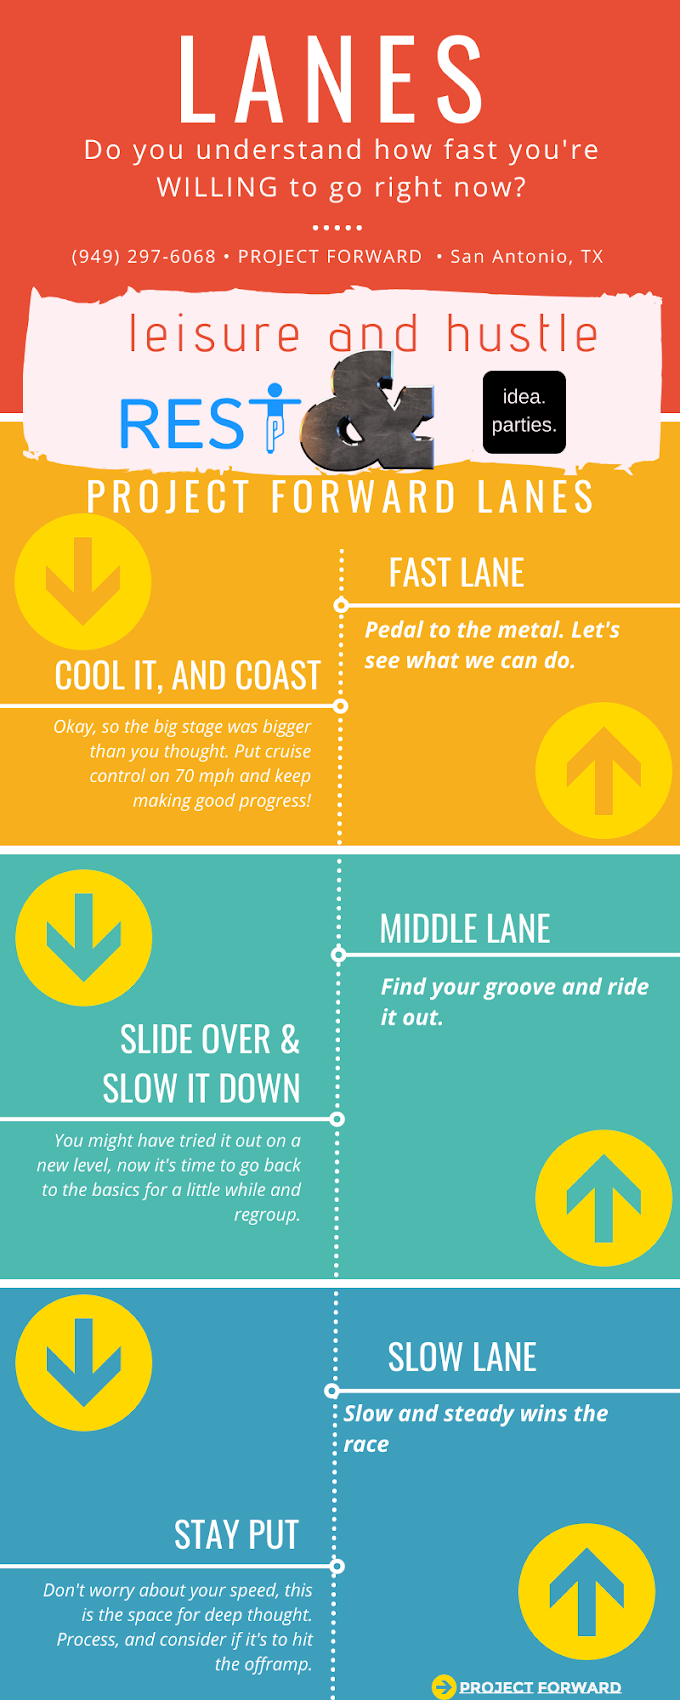 Learn Your Lane - Project Forward Lanes